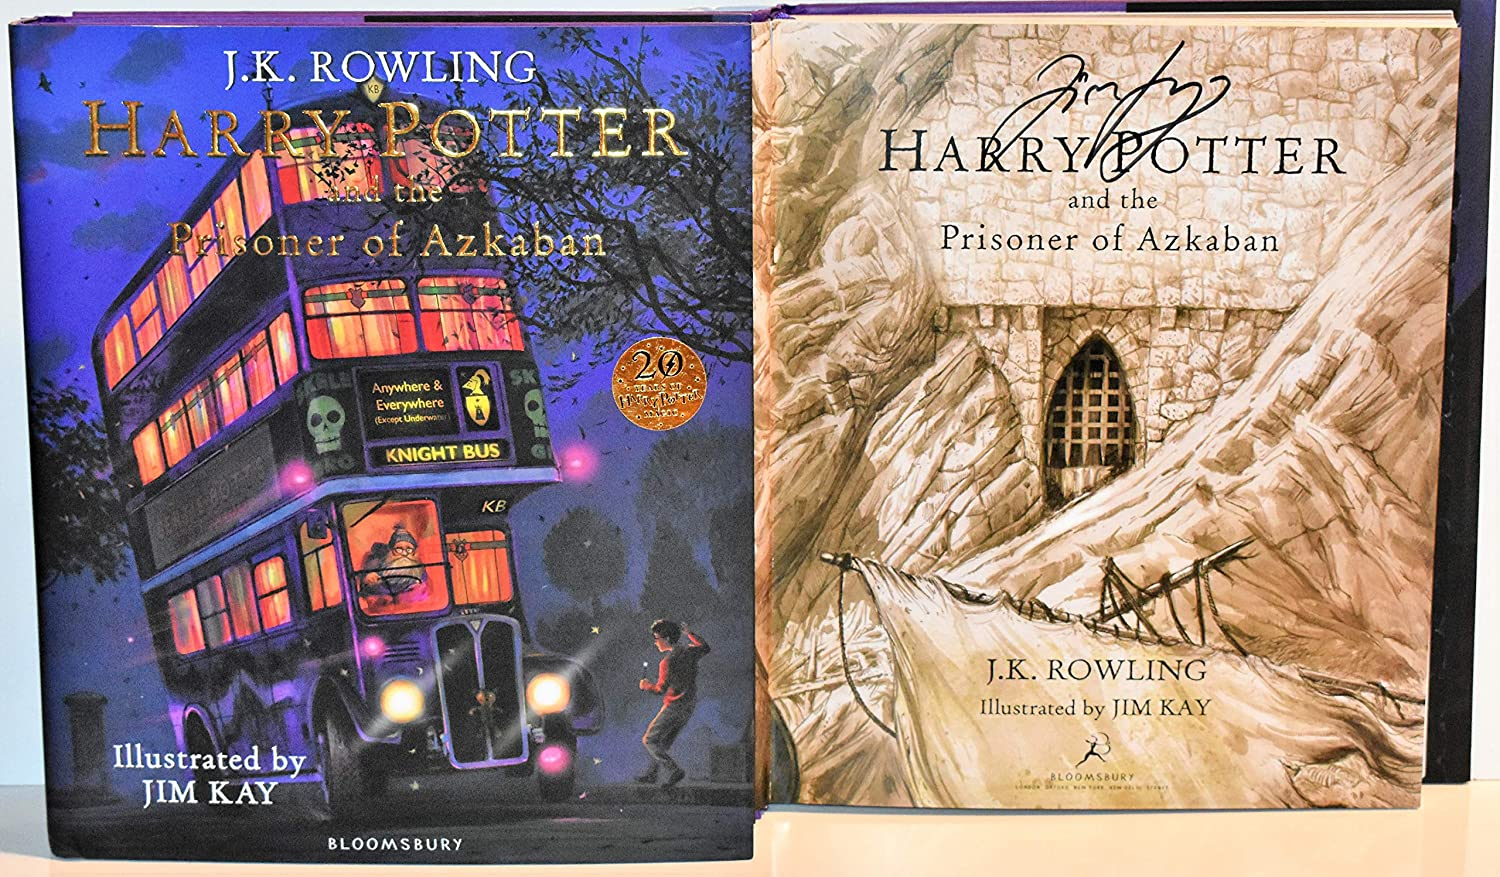 Harry Potter & The Prisoner of Azkaban Illustrated Book (UK First Print) Jim Kay SIGNED COA 5545 Signed Edition